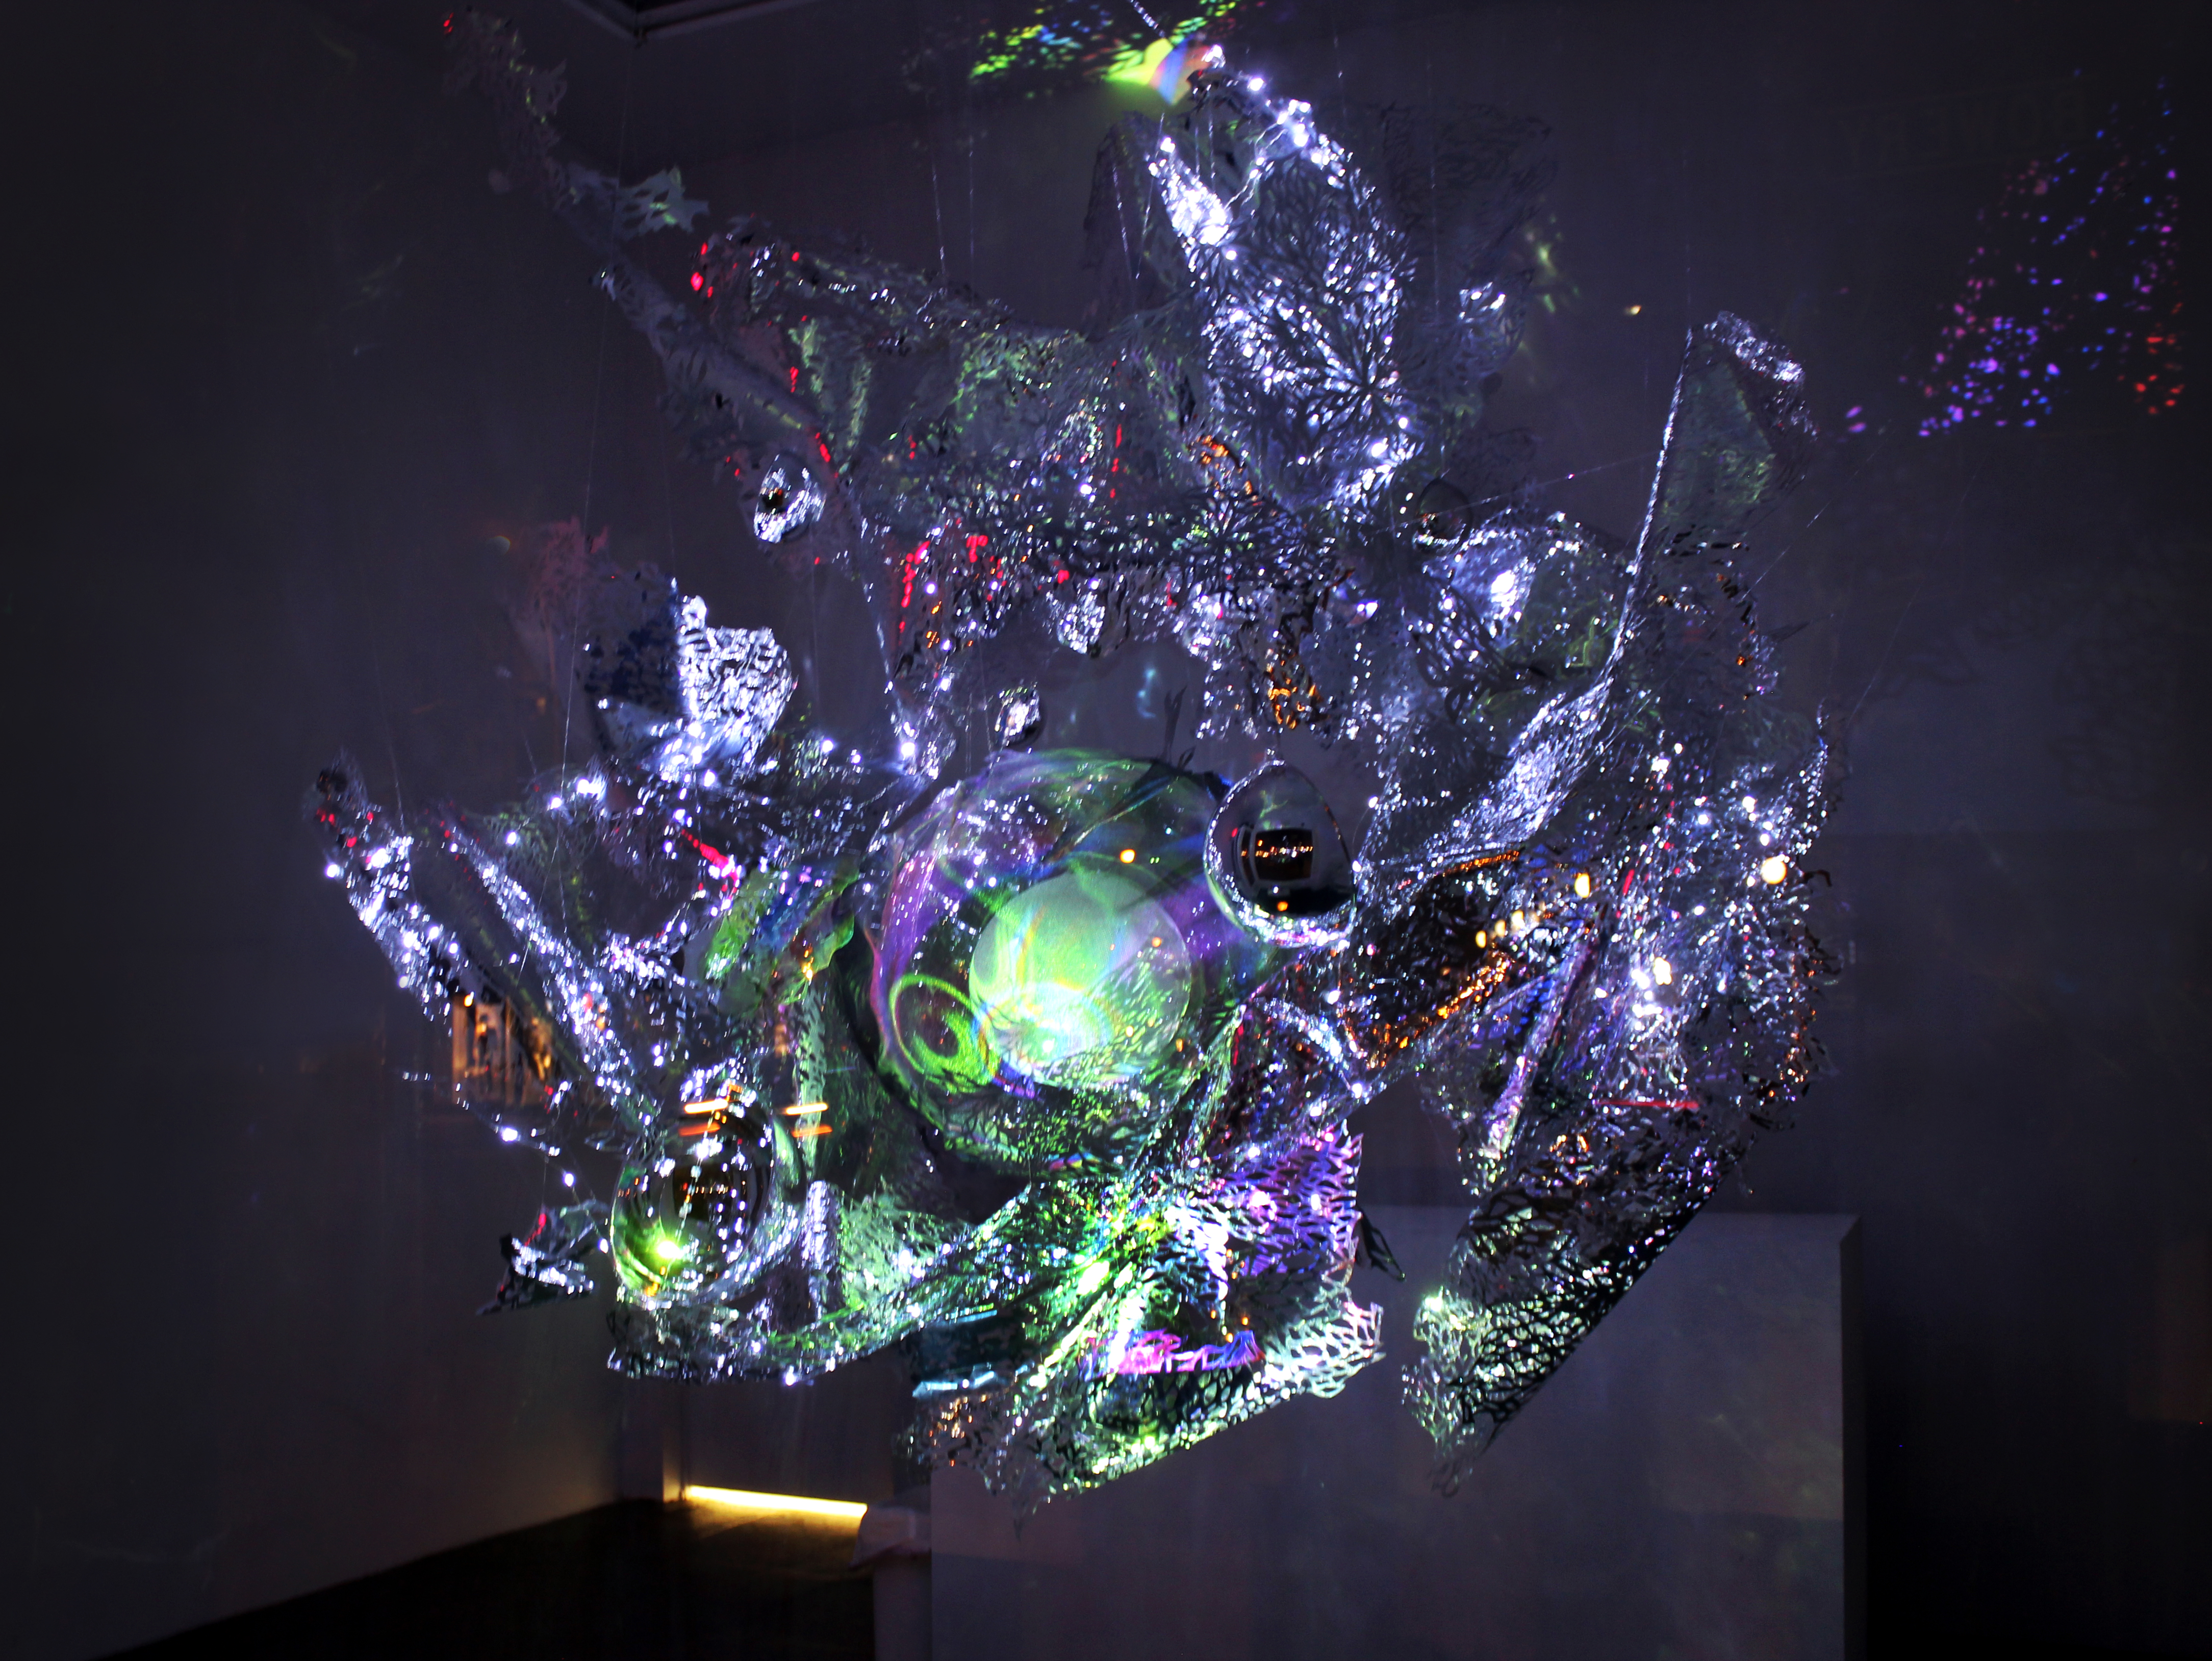 into lighting. immersive light sculptures by julia sinelnikova which transport you into an  ethereal world filled with reflective hues and flowing organic shapes \u2013 artmaze lighting b